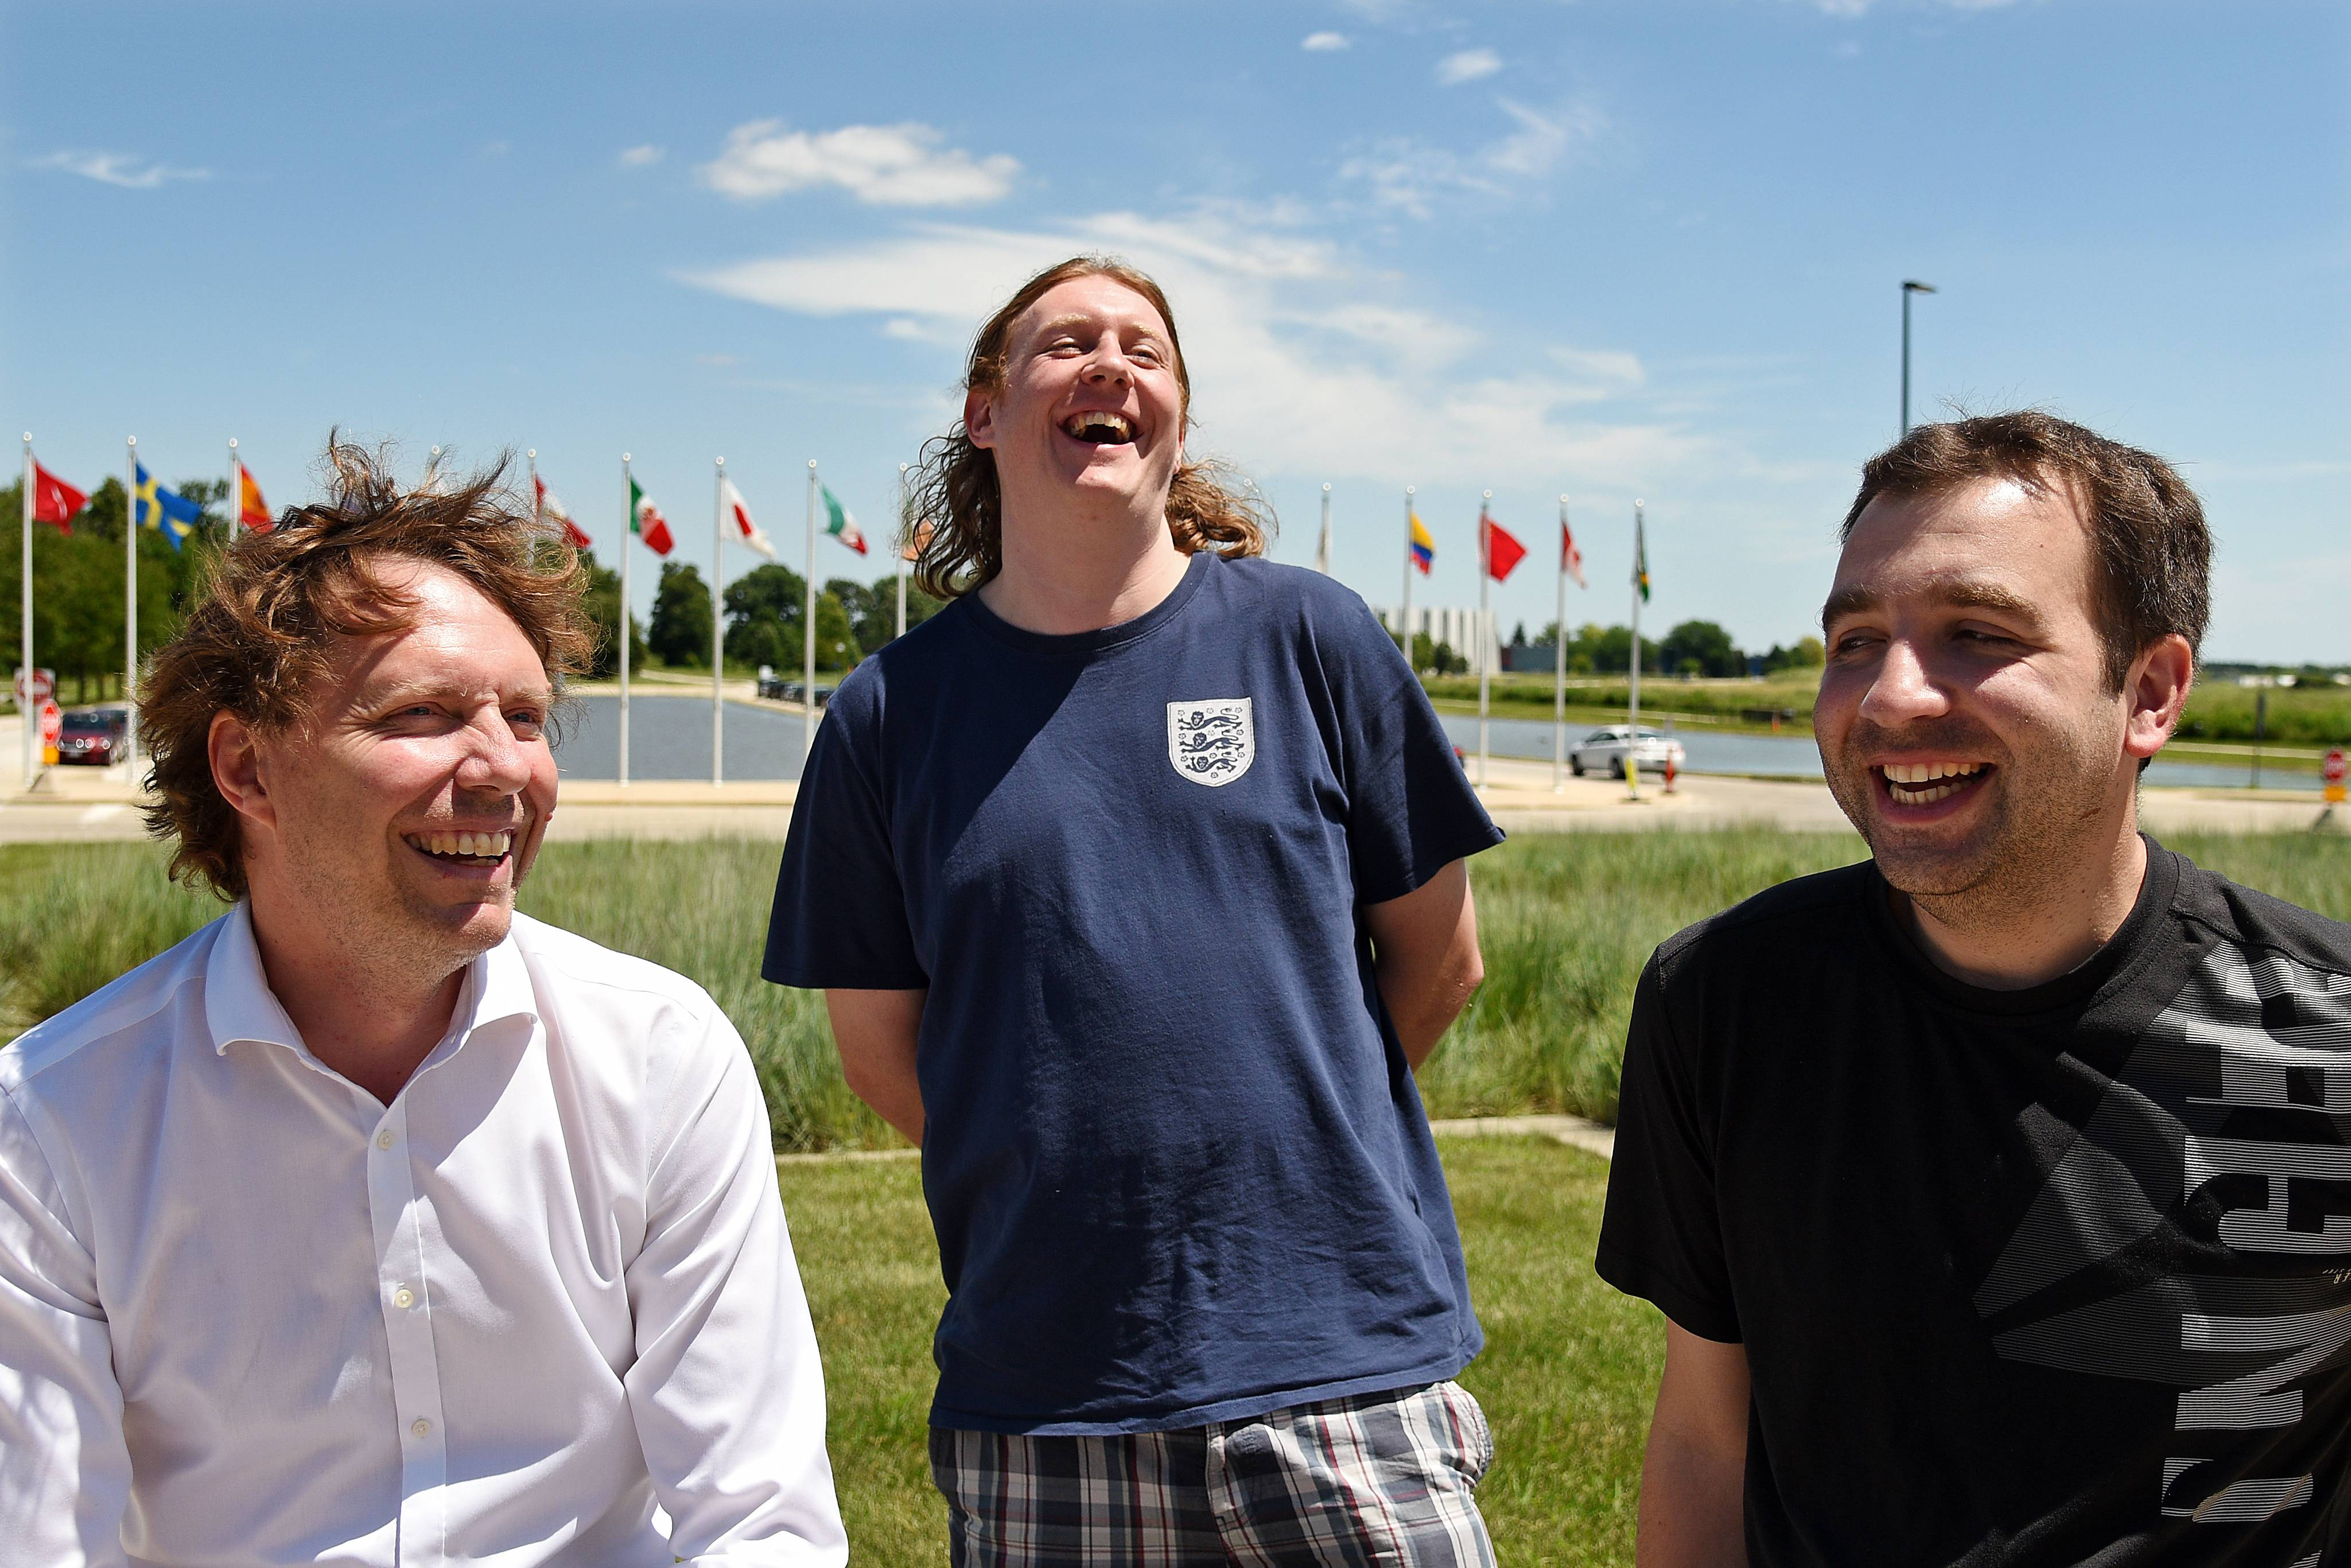 Television ratings for the World Cup might be lagging in the United States, but this international trio of Fermilab scientists couldn't be more pumped about this week's soccer action. Michel Sorel, left, is rooting for Belgium. Mike Wallbank, center, hopes his England triumphs. Vincent Roger, right, thinks his homeland of France could win it all.